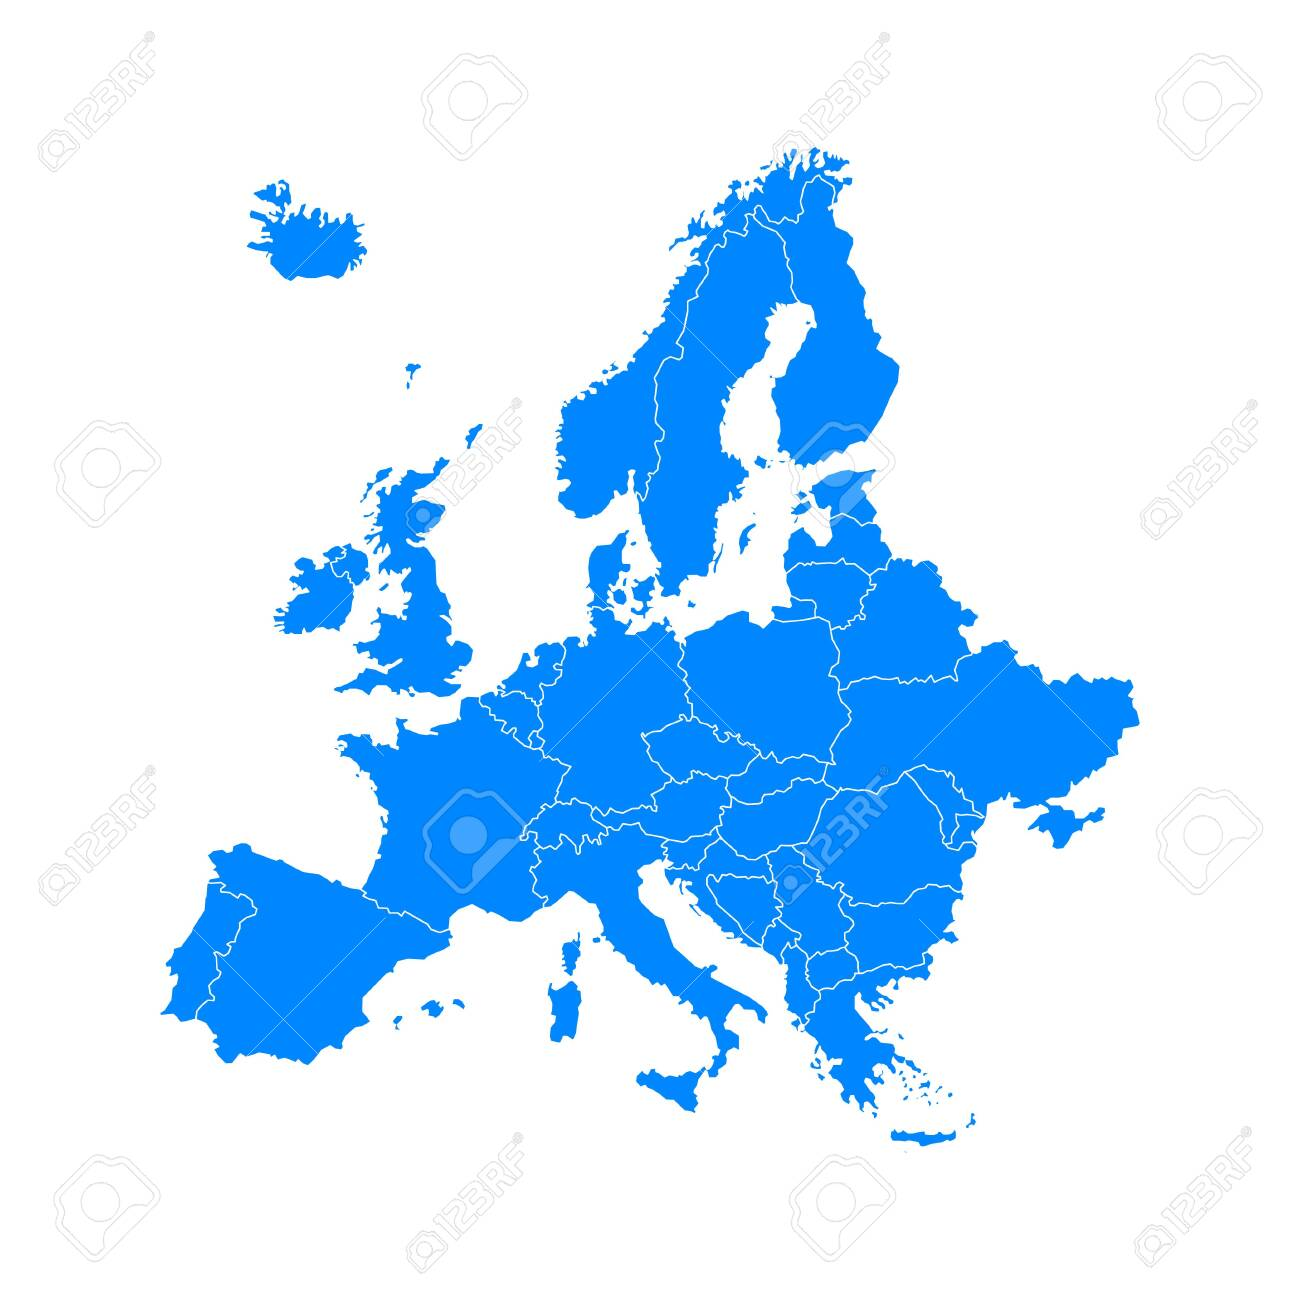 blue europe map on a white background in flat - 135457075